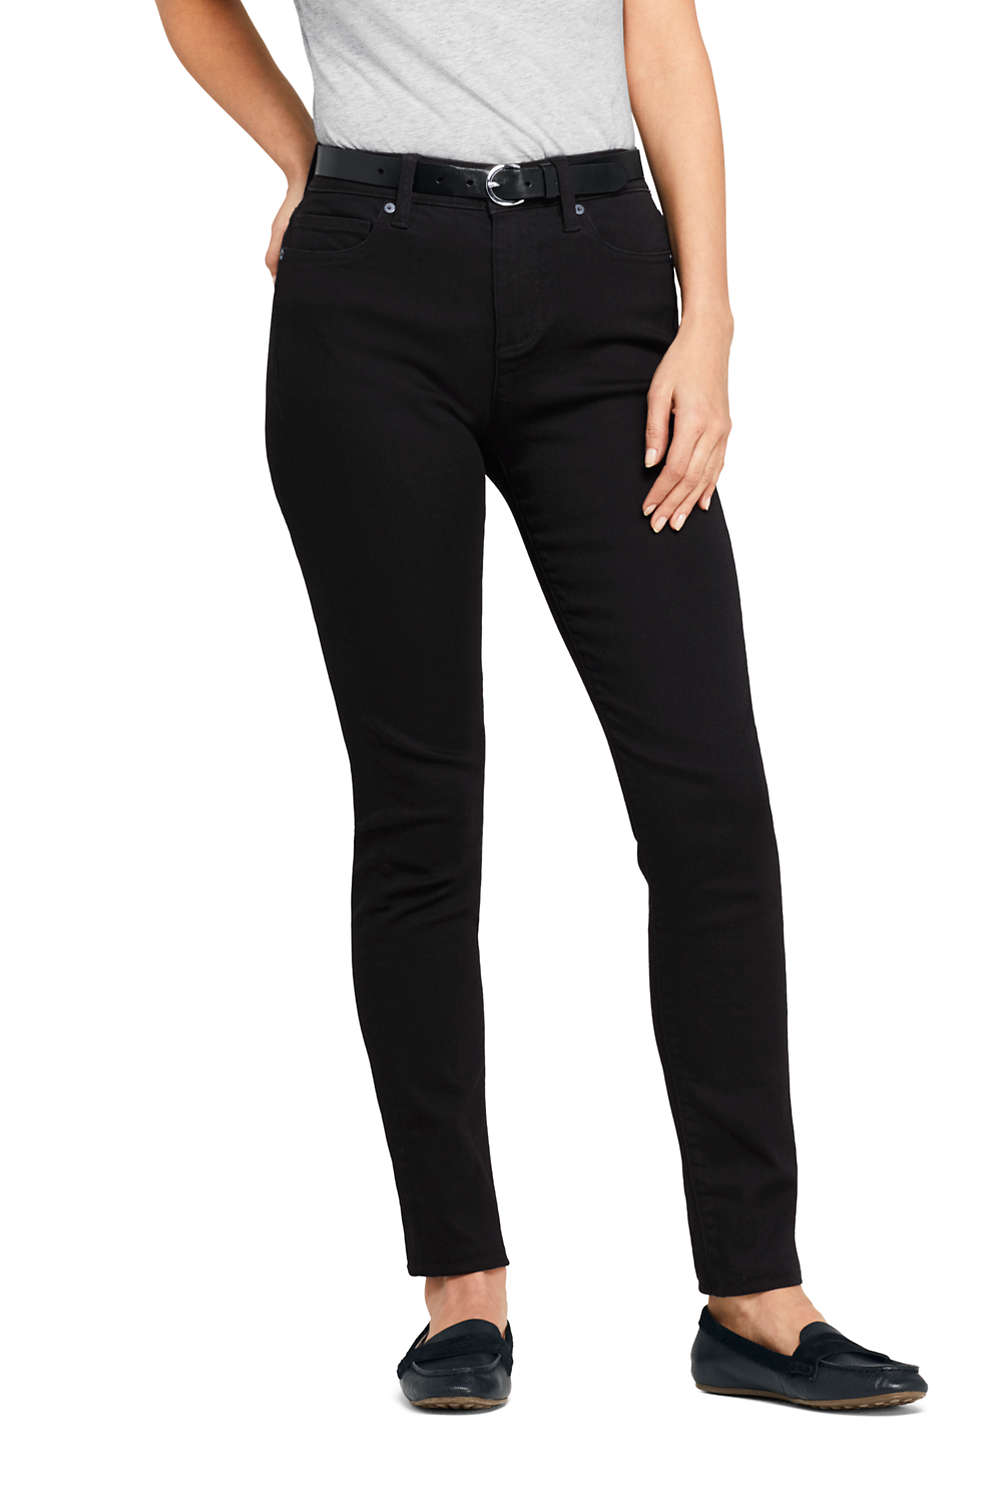 bb1d7adc480 Women s Mid Rise Curvy Black Skinny Jeans from Lands  End